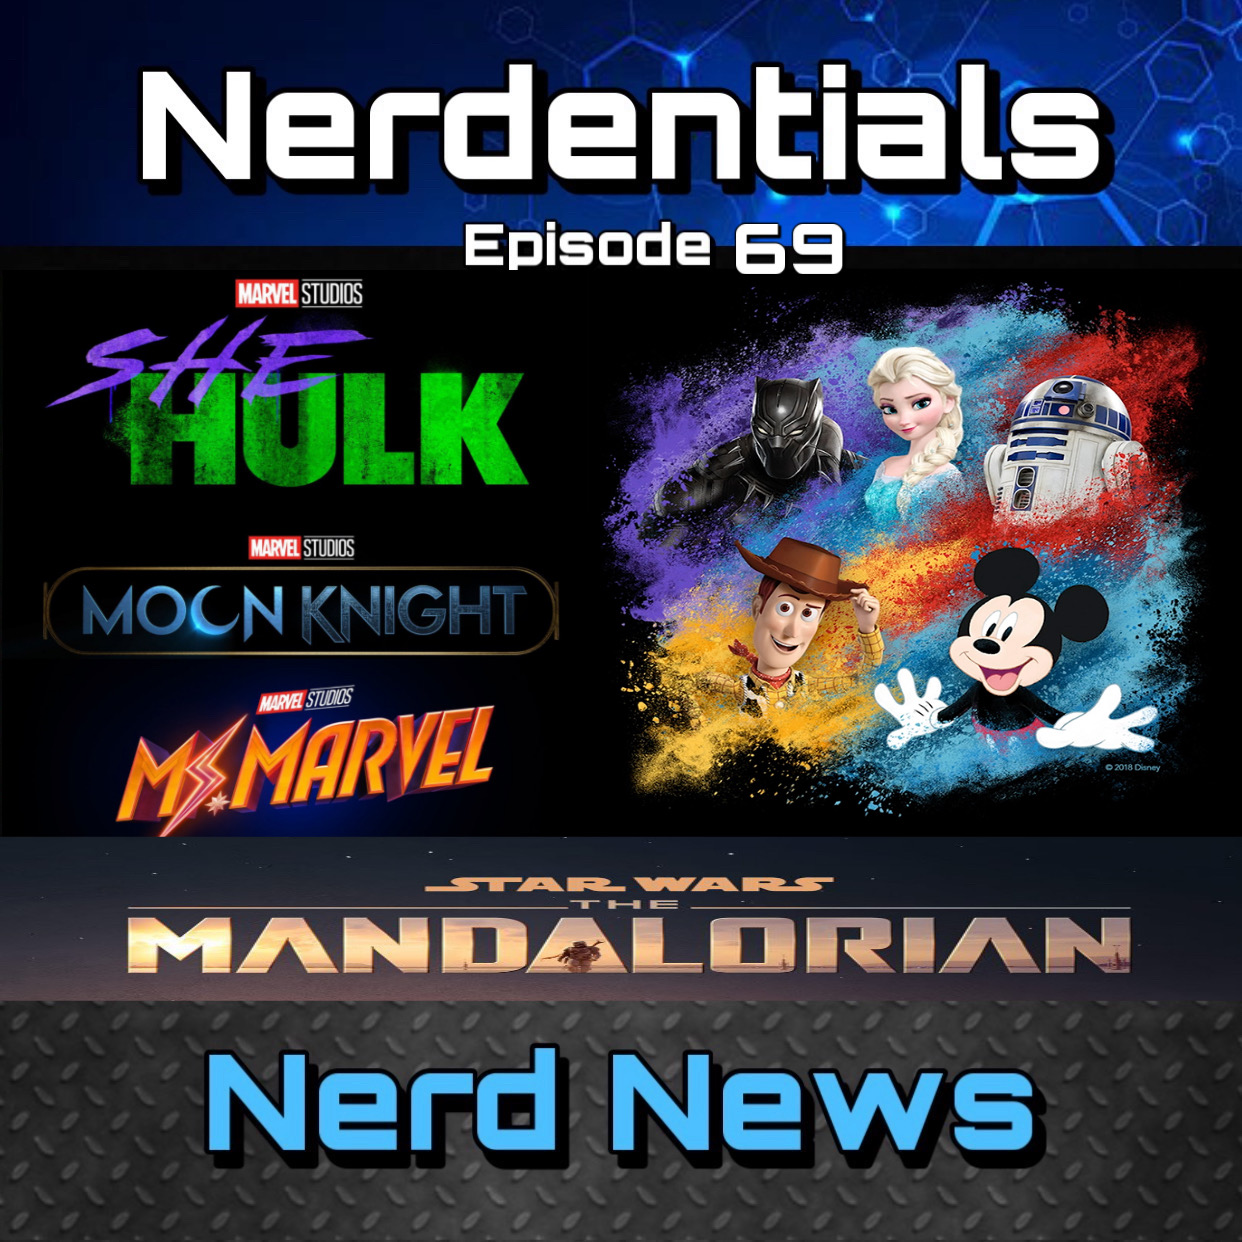 - Welcome to Nerdentials! Your weekly dose of the nerdy essentials. Covering Film, TV, Video Games and Comics.This week your fellow nerds Joe, Matt, Nick and Lynn cover almost every announcement that come through the D23 event. Time Stamps bellow are for you listening convenience!